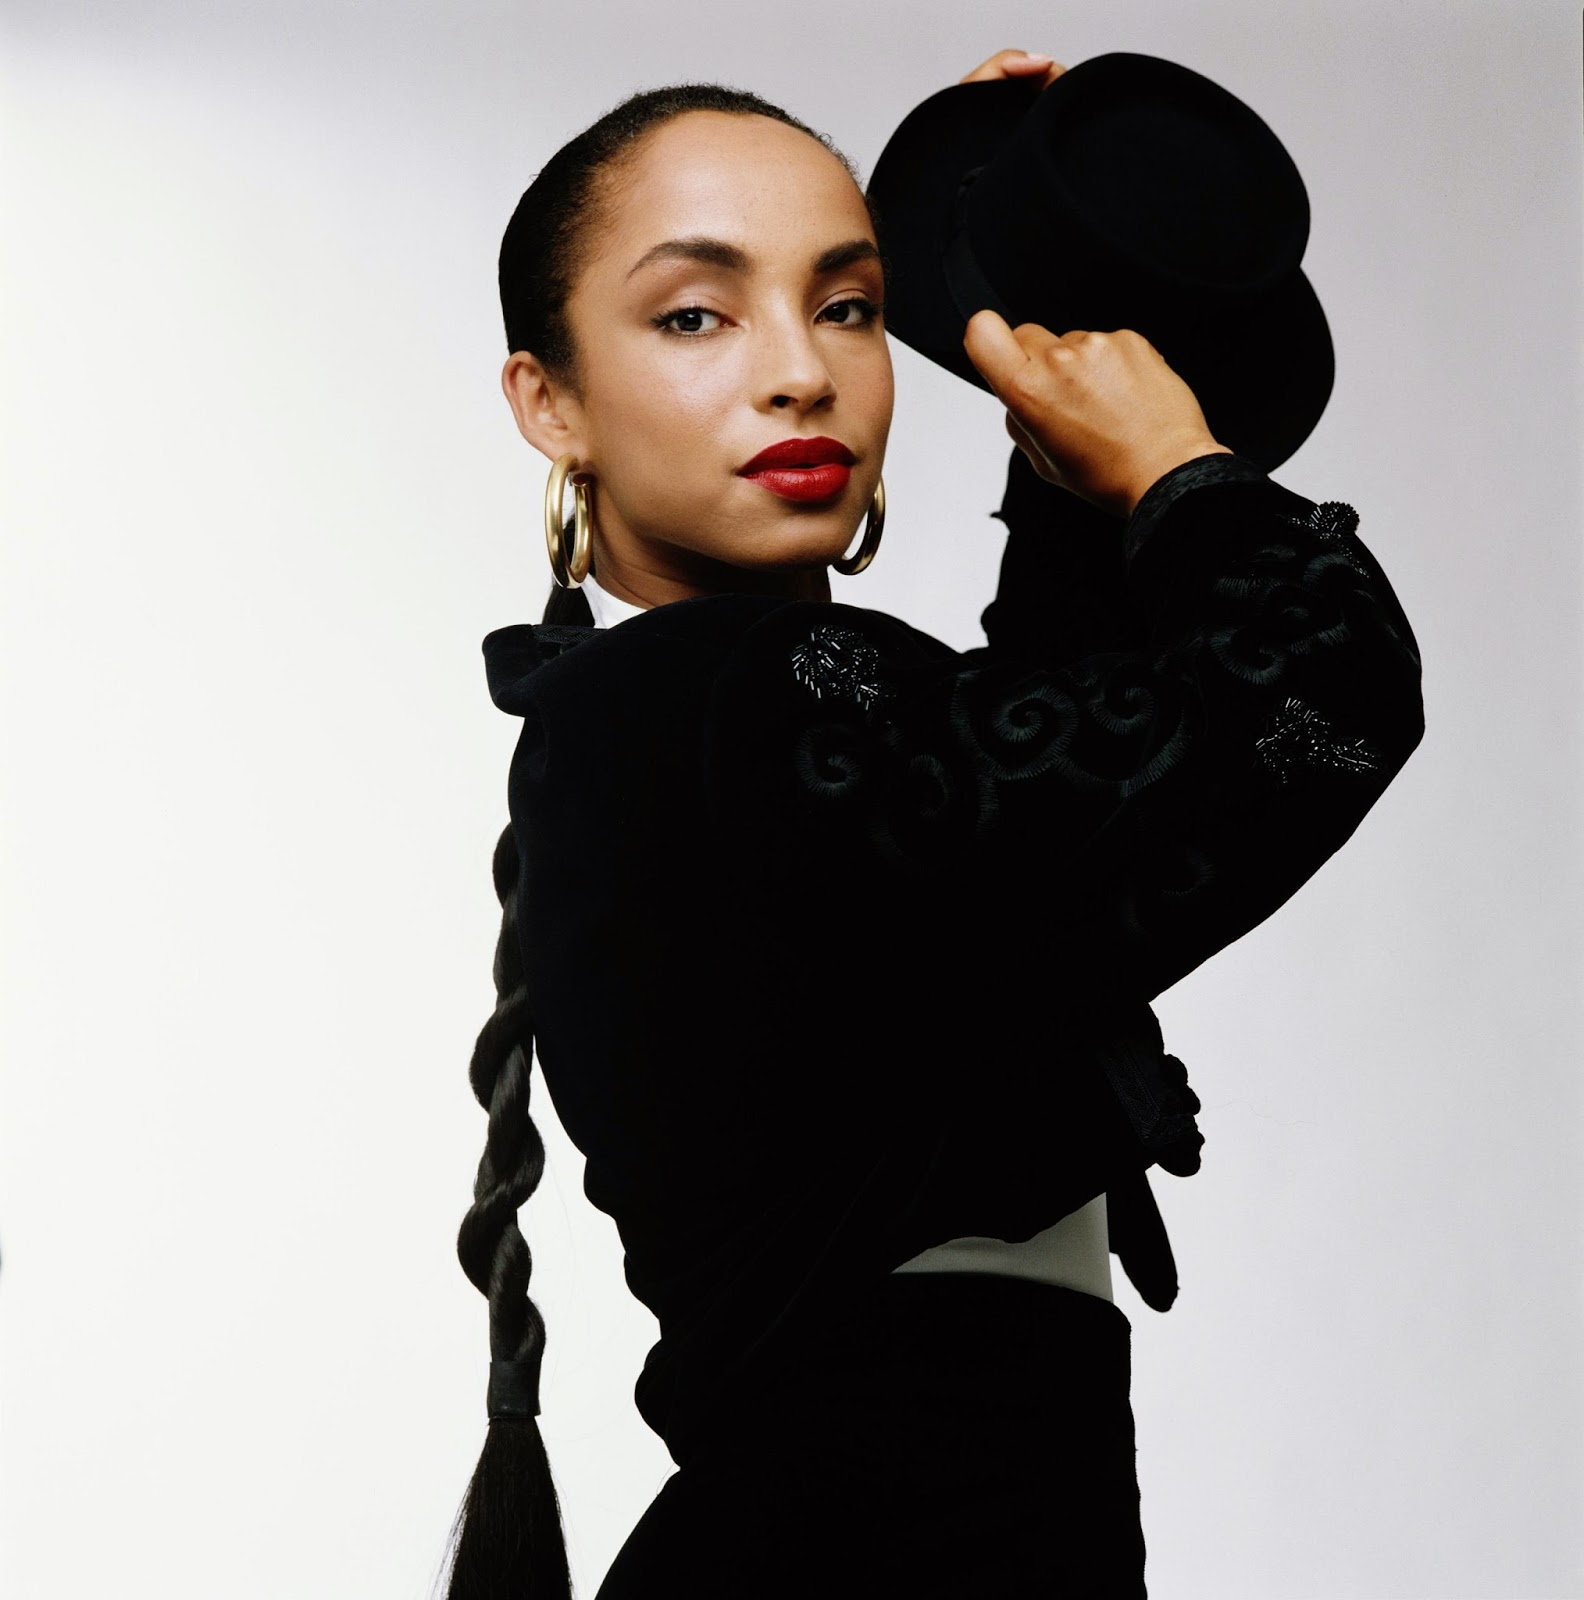 Model Symon Leone just did a Sade-inspired shoot and the